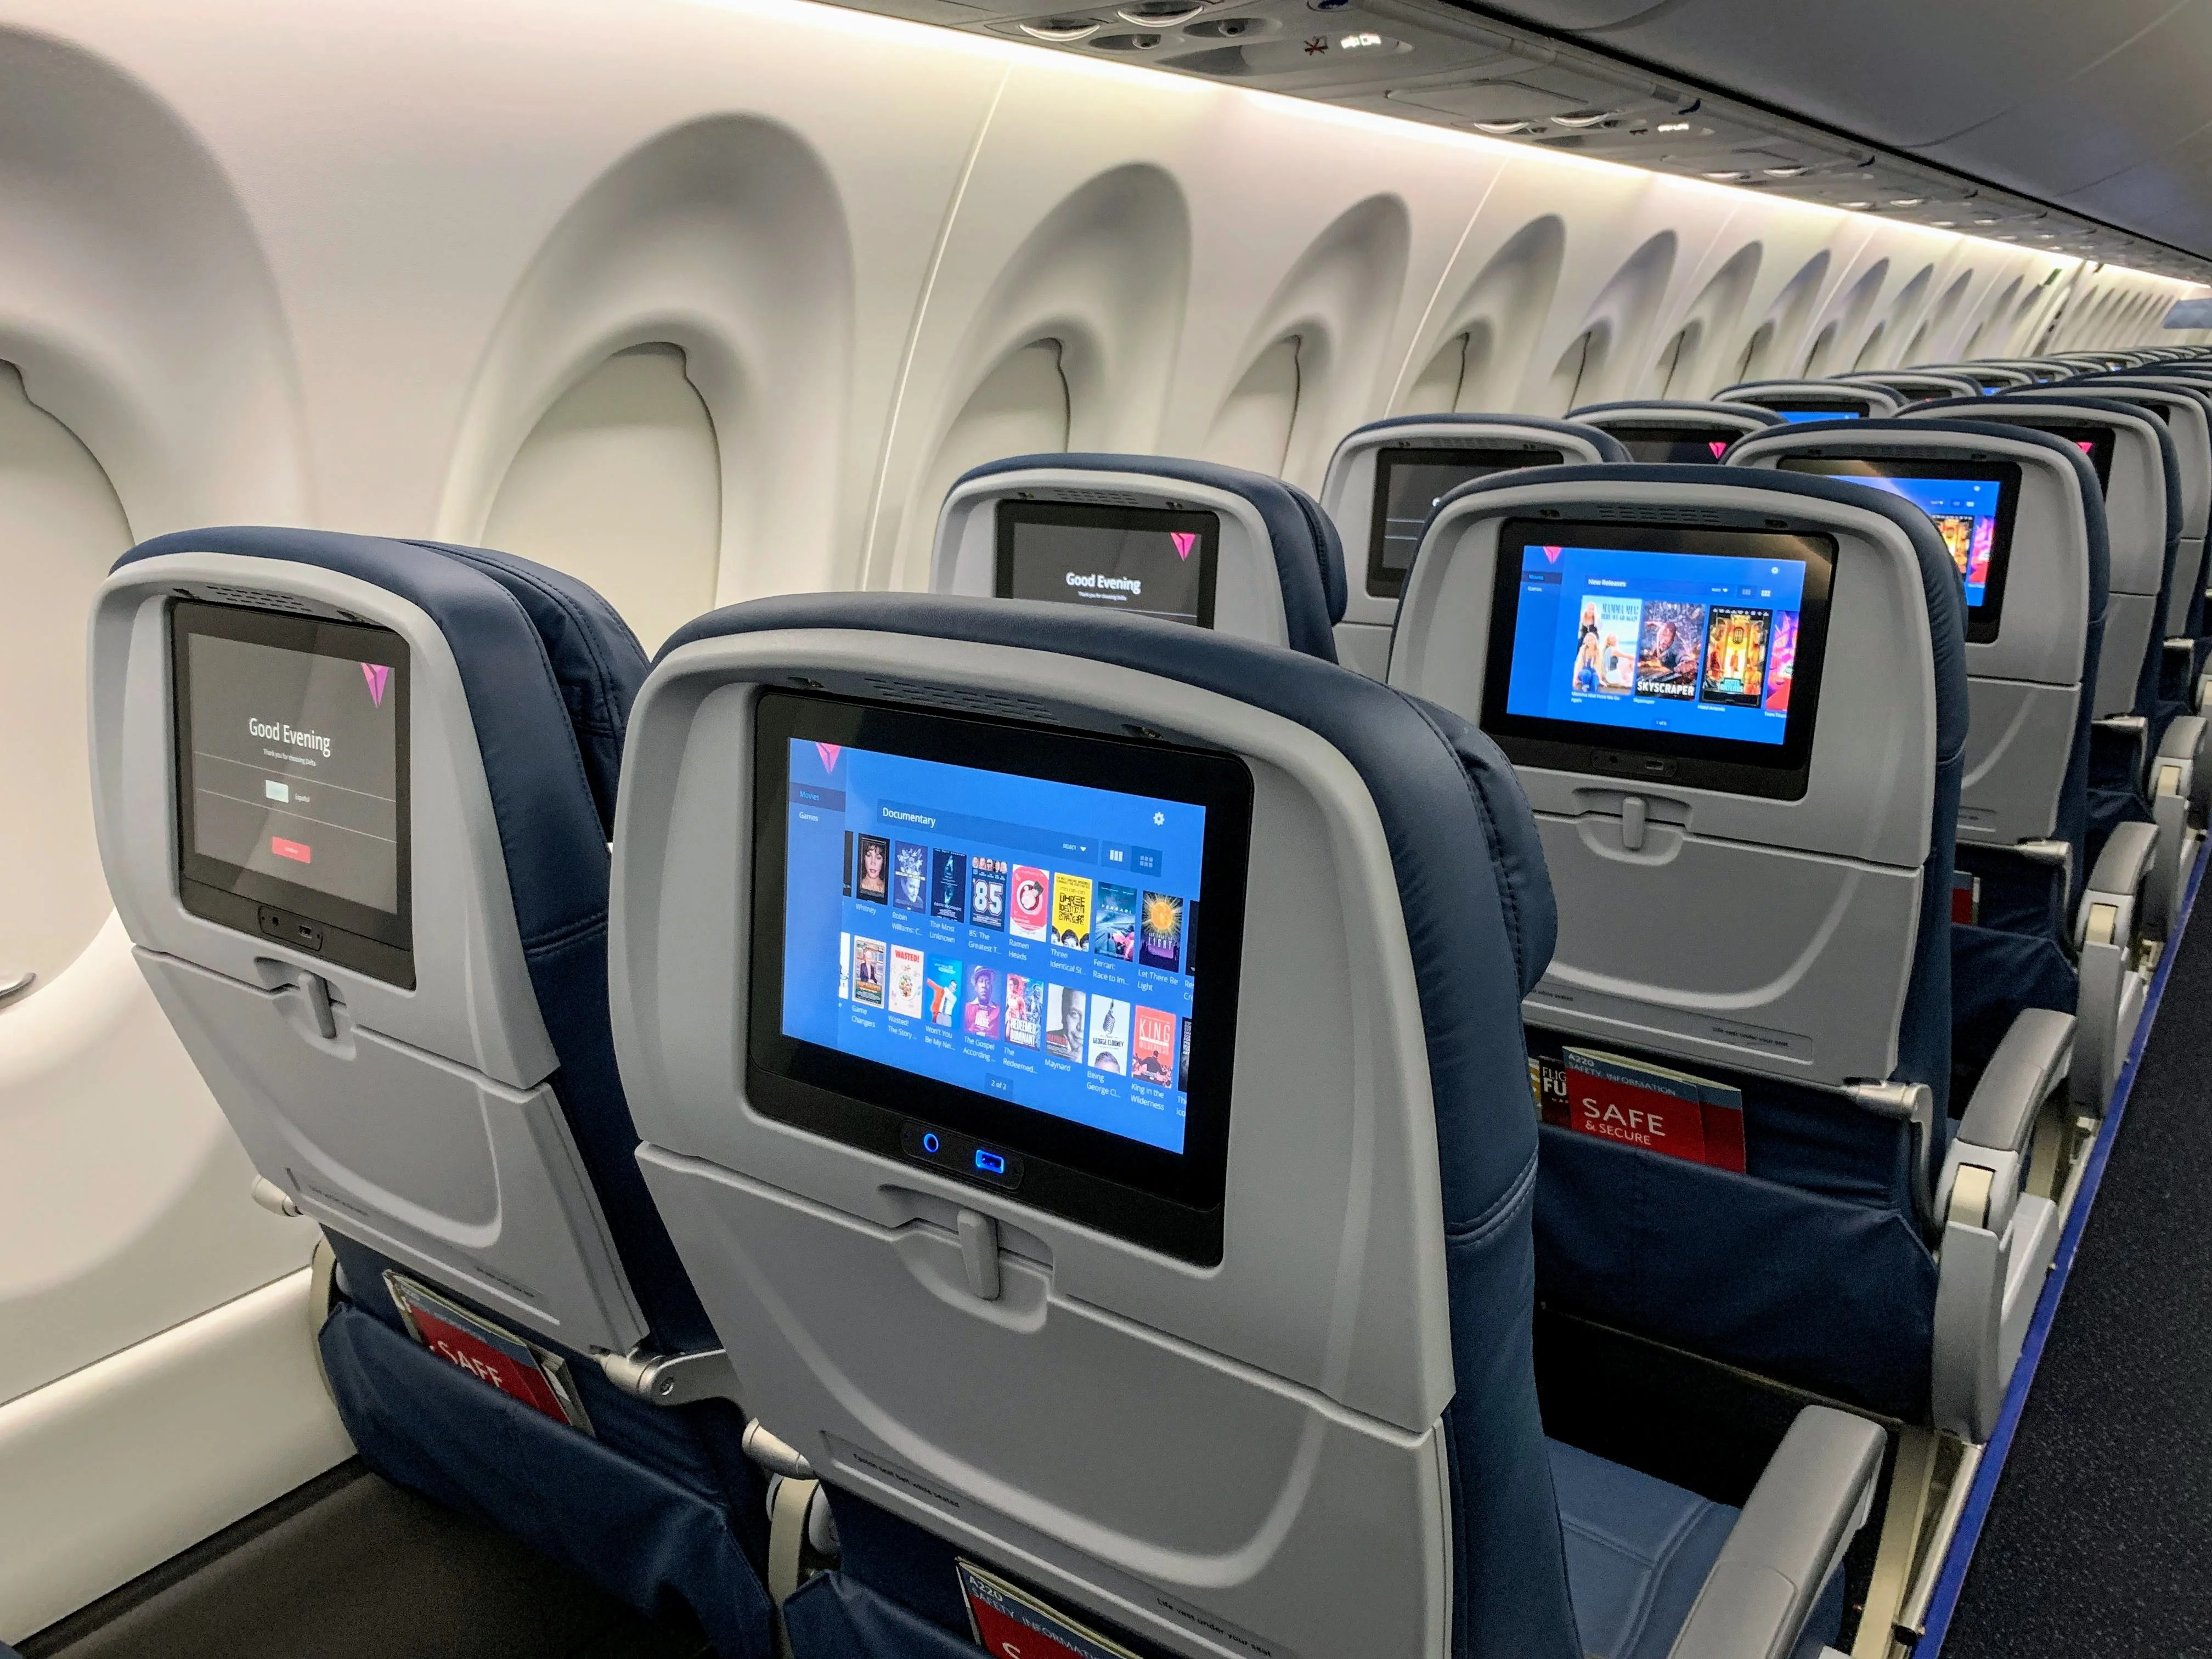 This Aircraft Manufacturer Thinks Flexible Displays Could Revolutionize Inflight Entertainment